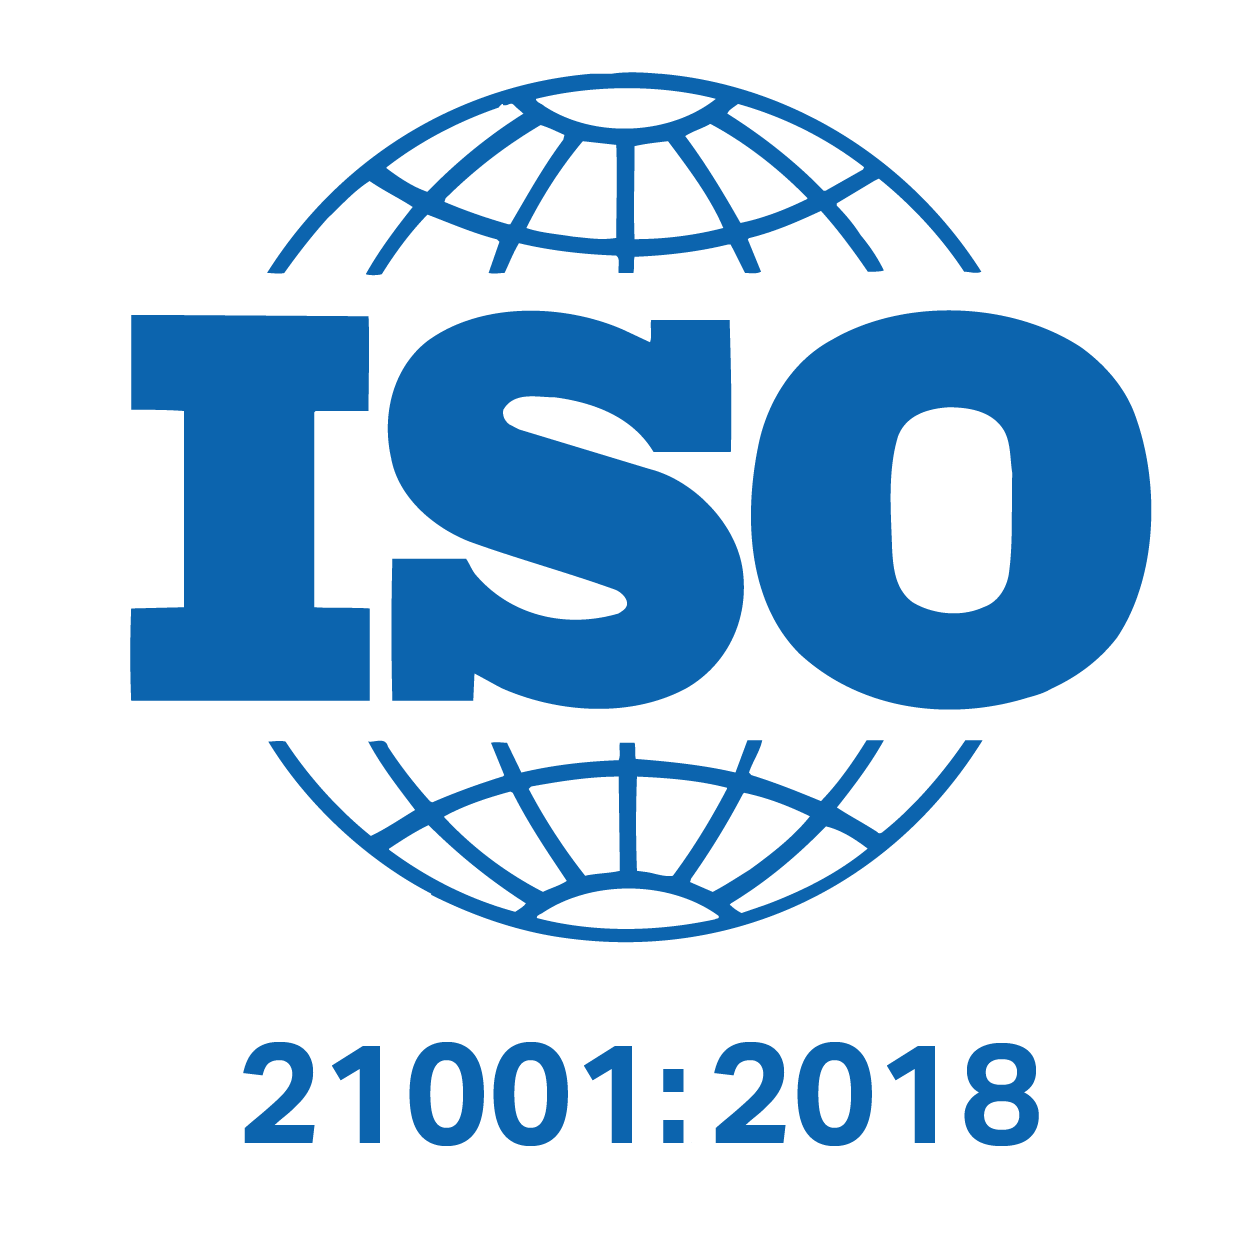 Label ISO 9001:2018